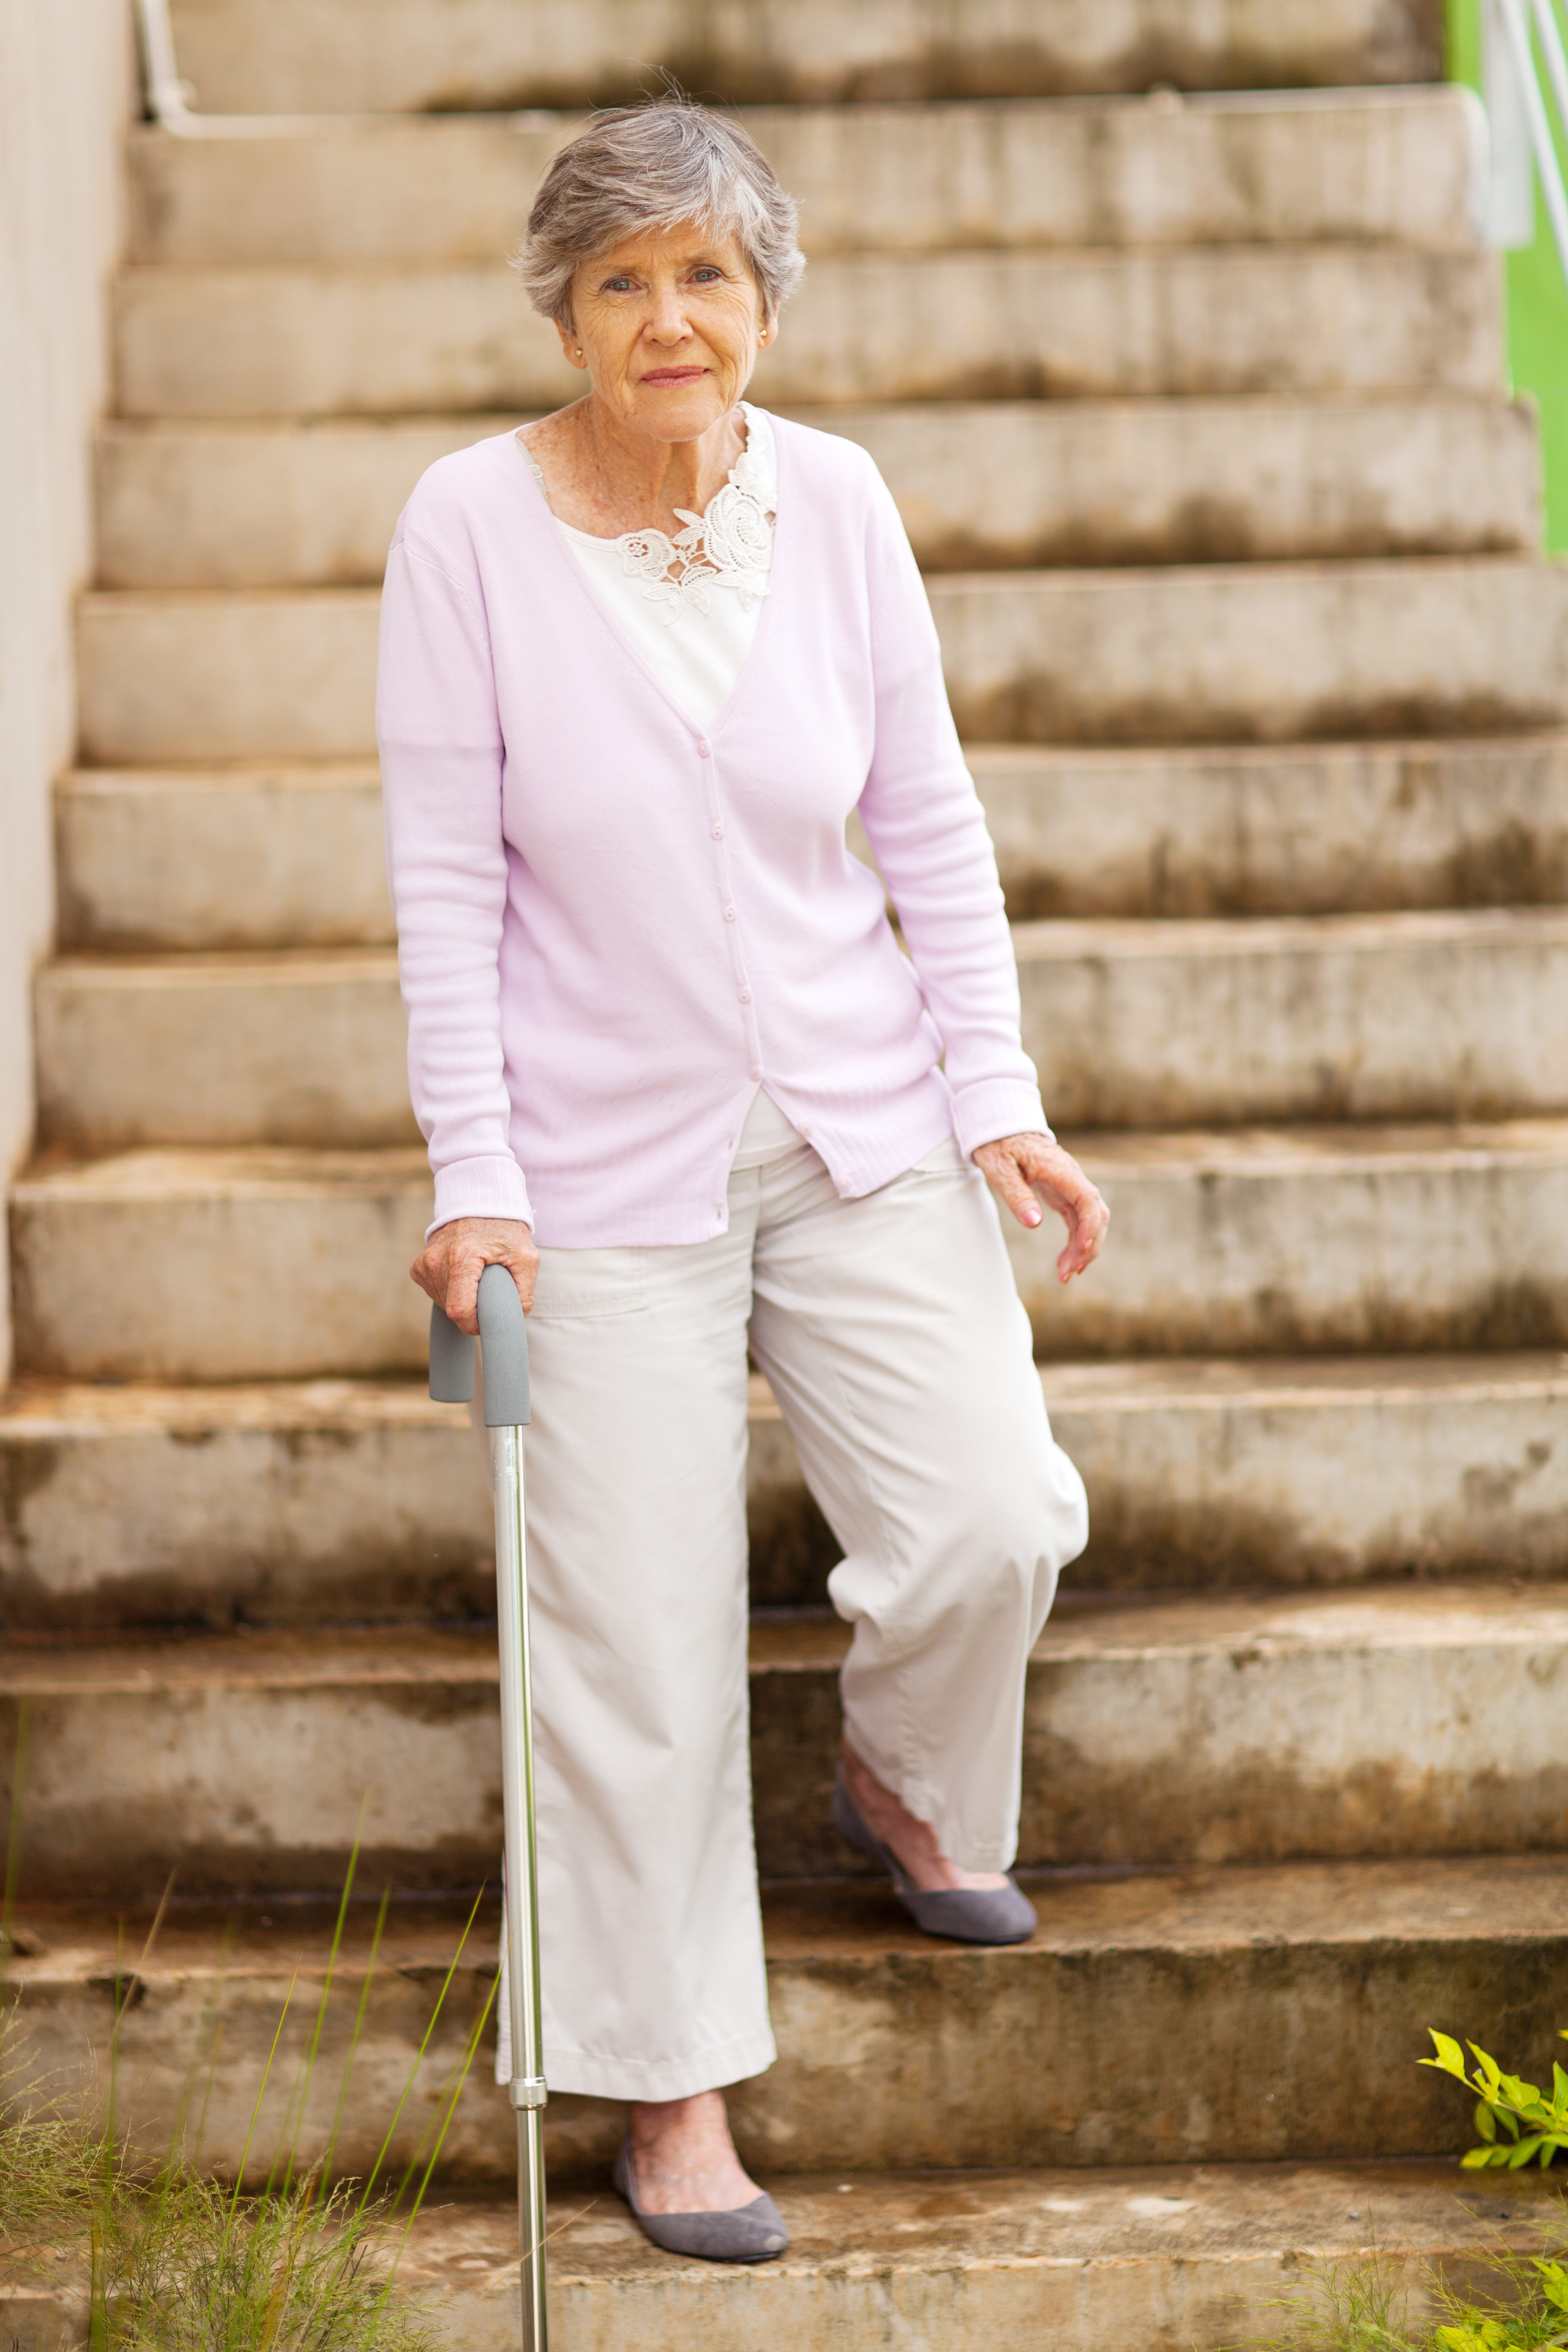 lonely senior woman standing by stairway